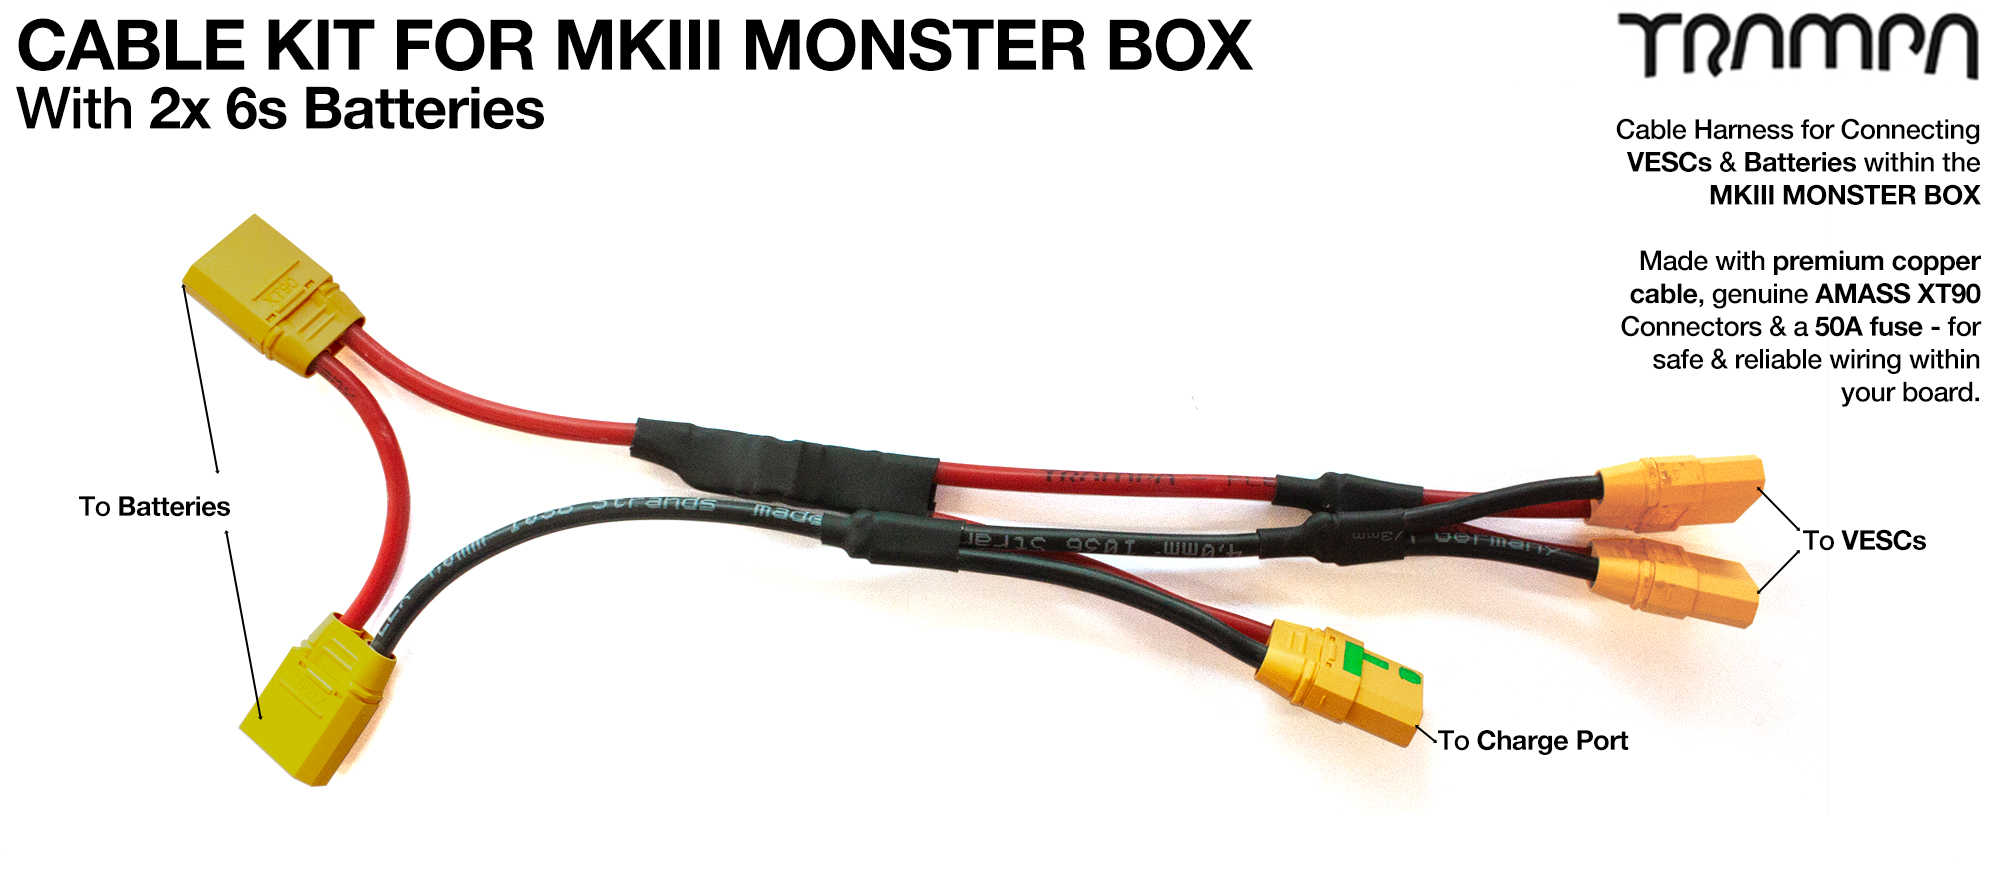 Yes please supply a 12S CABLE KIT to fit 2x LARGE LIPO-POLYMER cells (+£15)